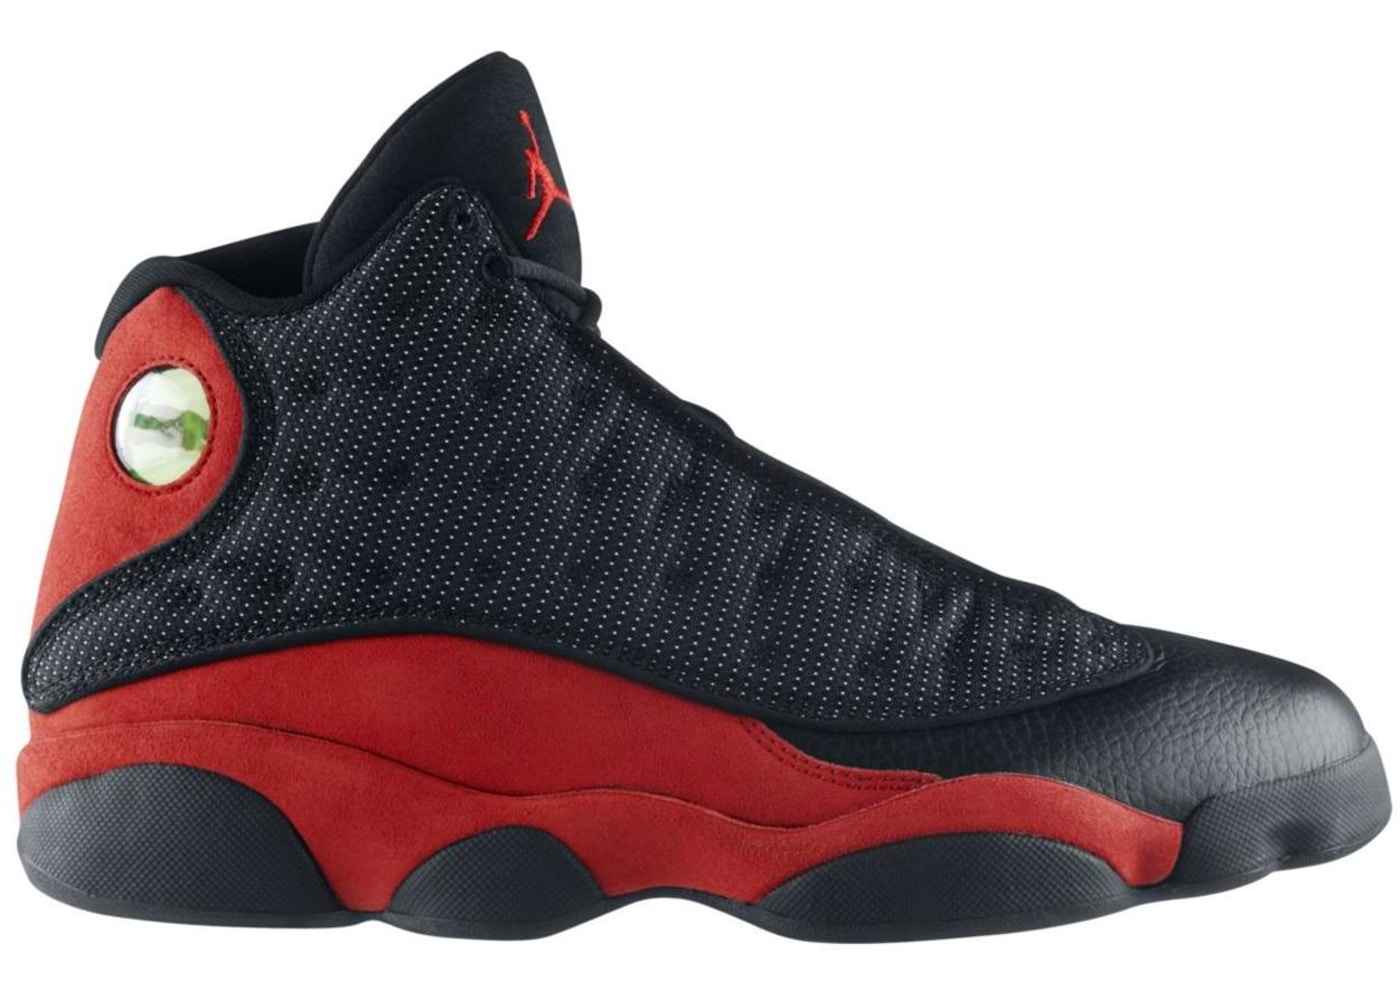 super popular 6be0d 2d355 Jordan 13 Retro Bred (2013) - 414571-010